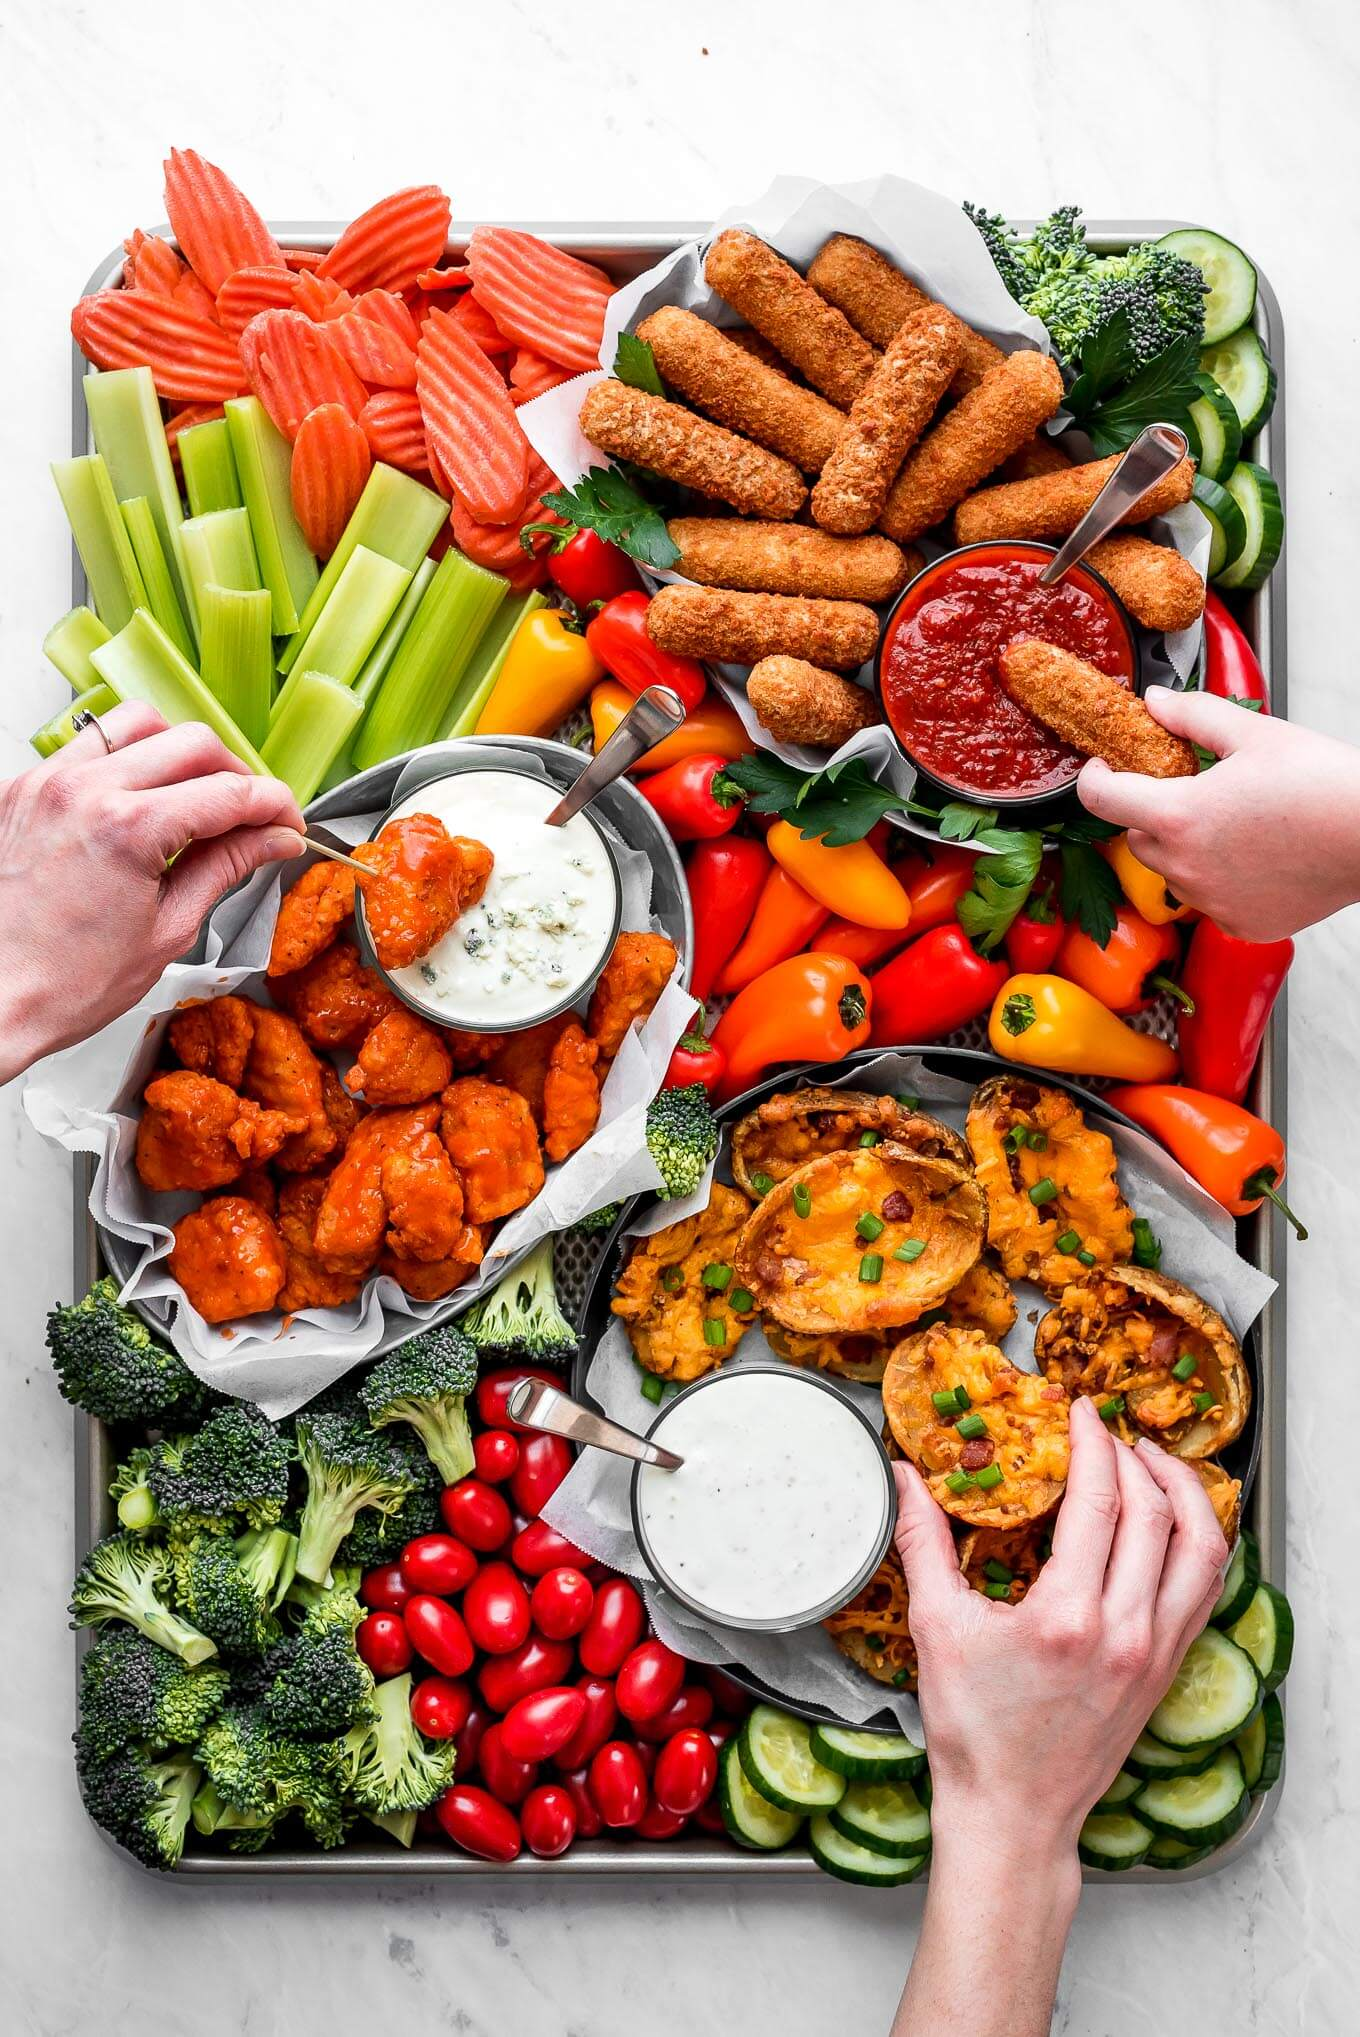 A Super Bowl Snack Board full of fresh vegetables, mozzarella sticks, buffalo, chicken, potato skins, and dipping sauces.